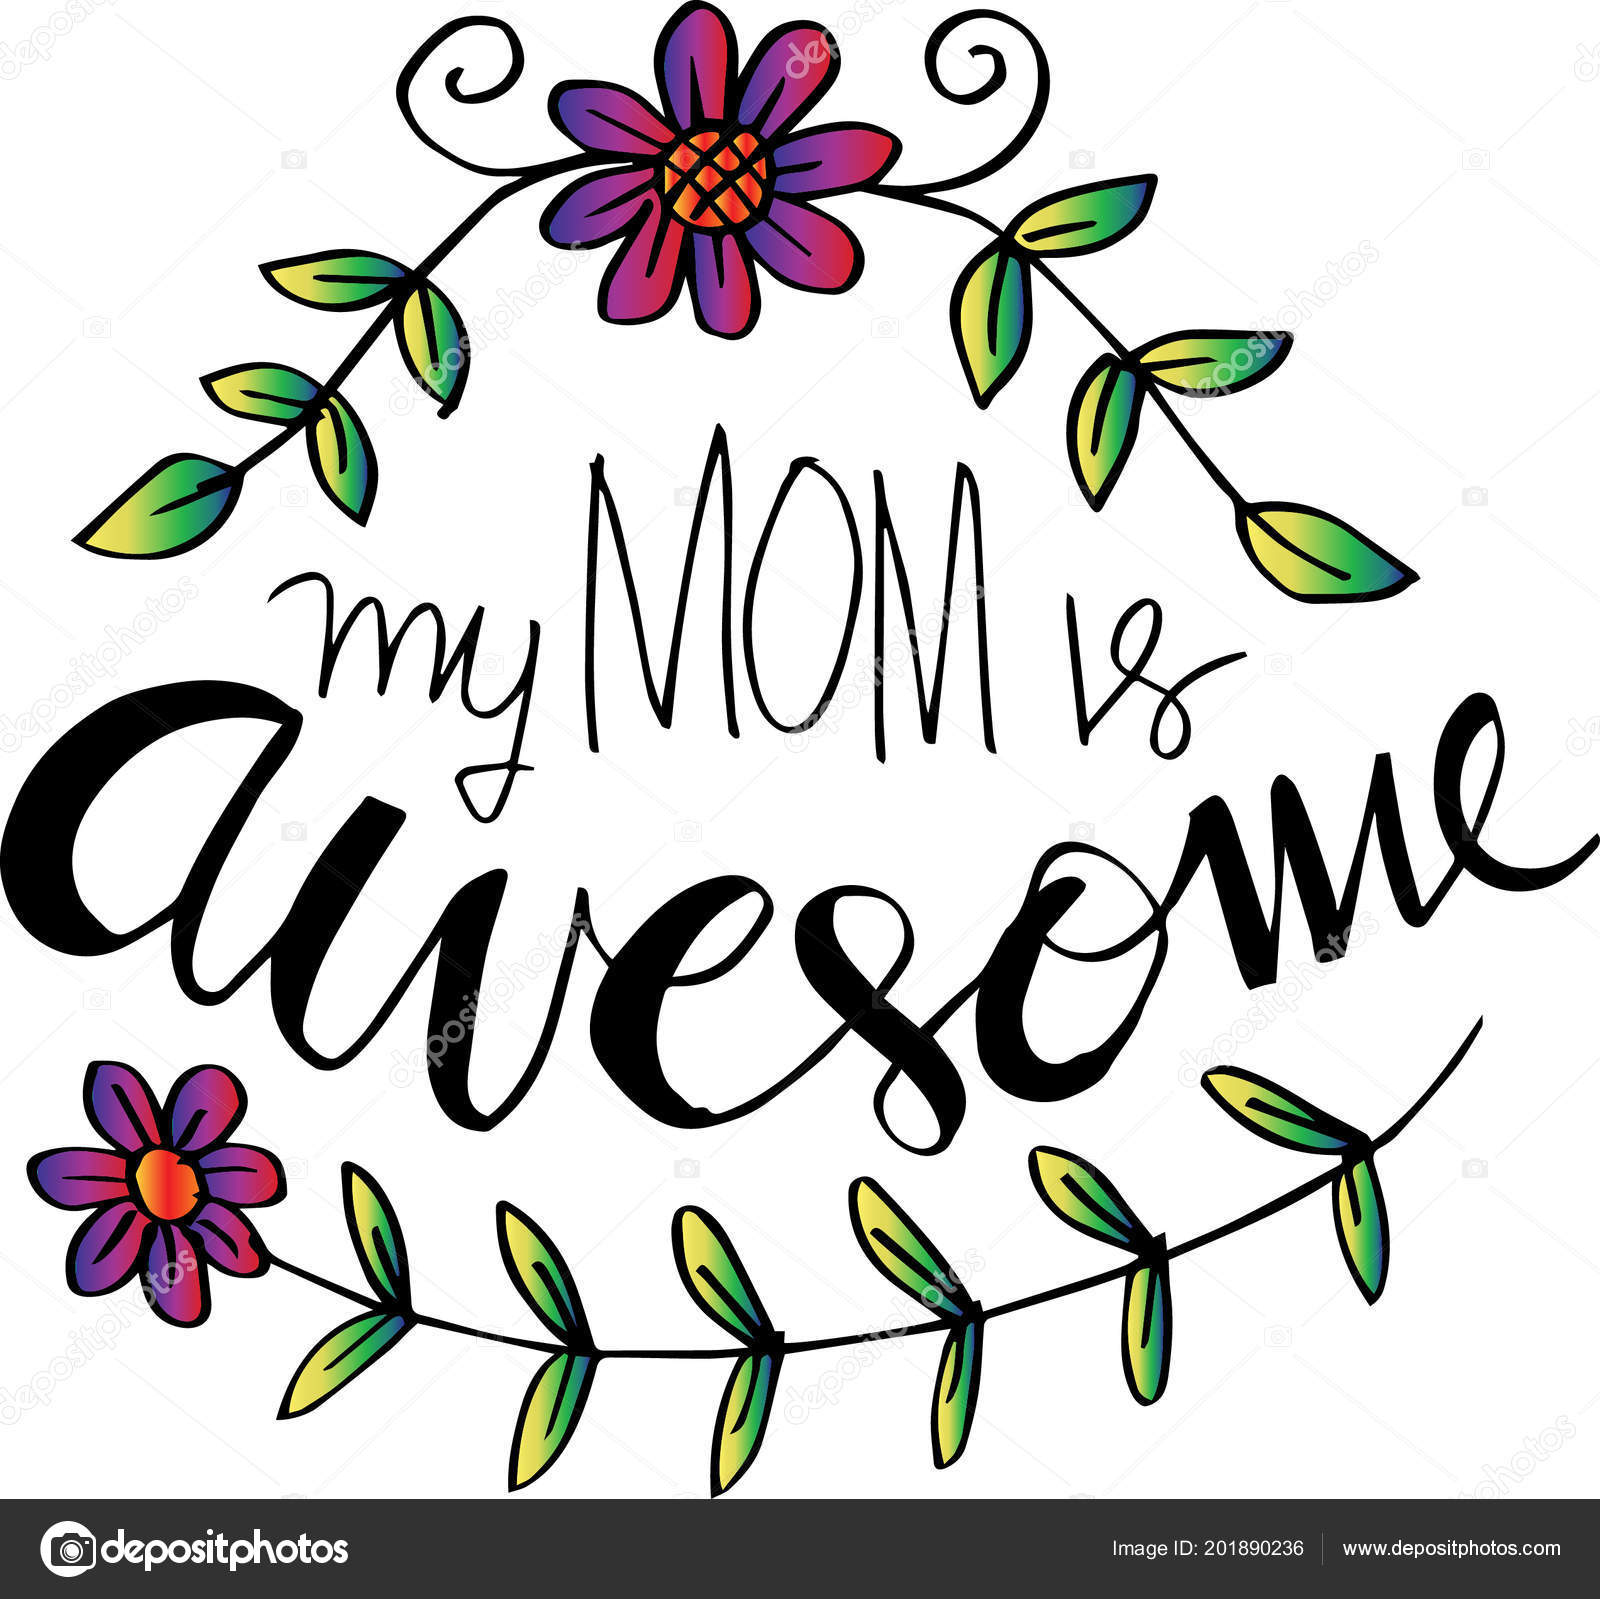 mom awesome lettering happy mothers day greeting card fotografias Happy Feast Day Greetings mom awesome lettering happy mothers day greeting card fotografia de stock